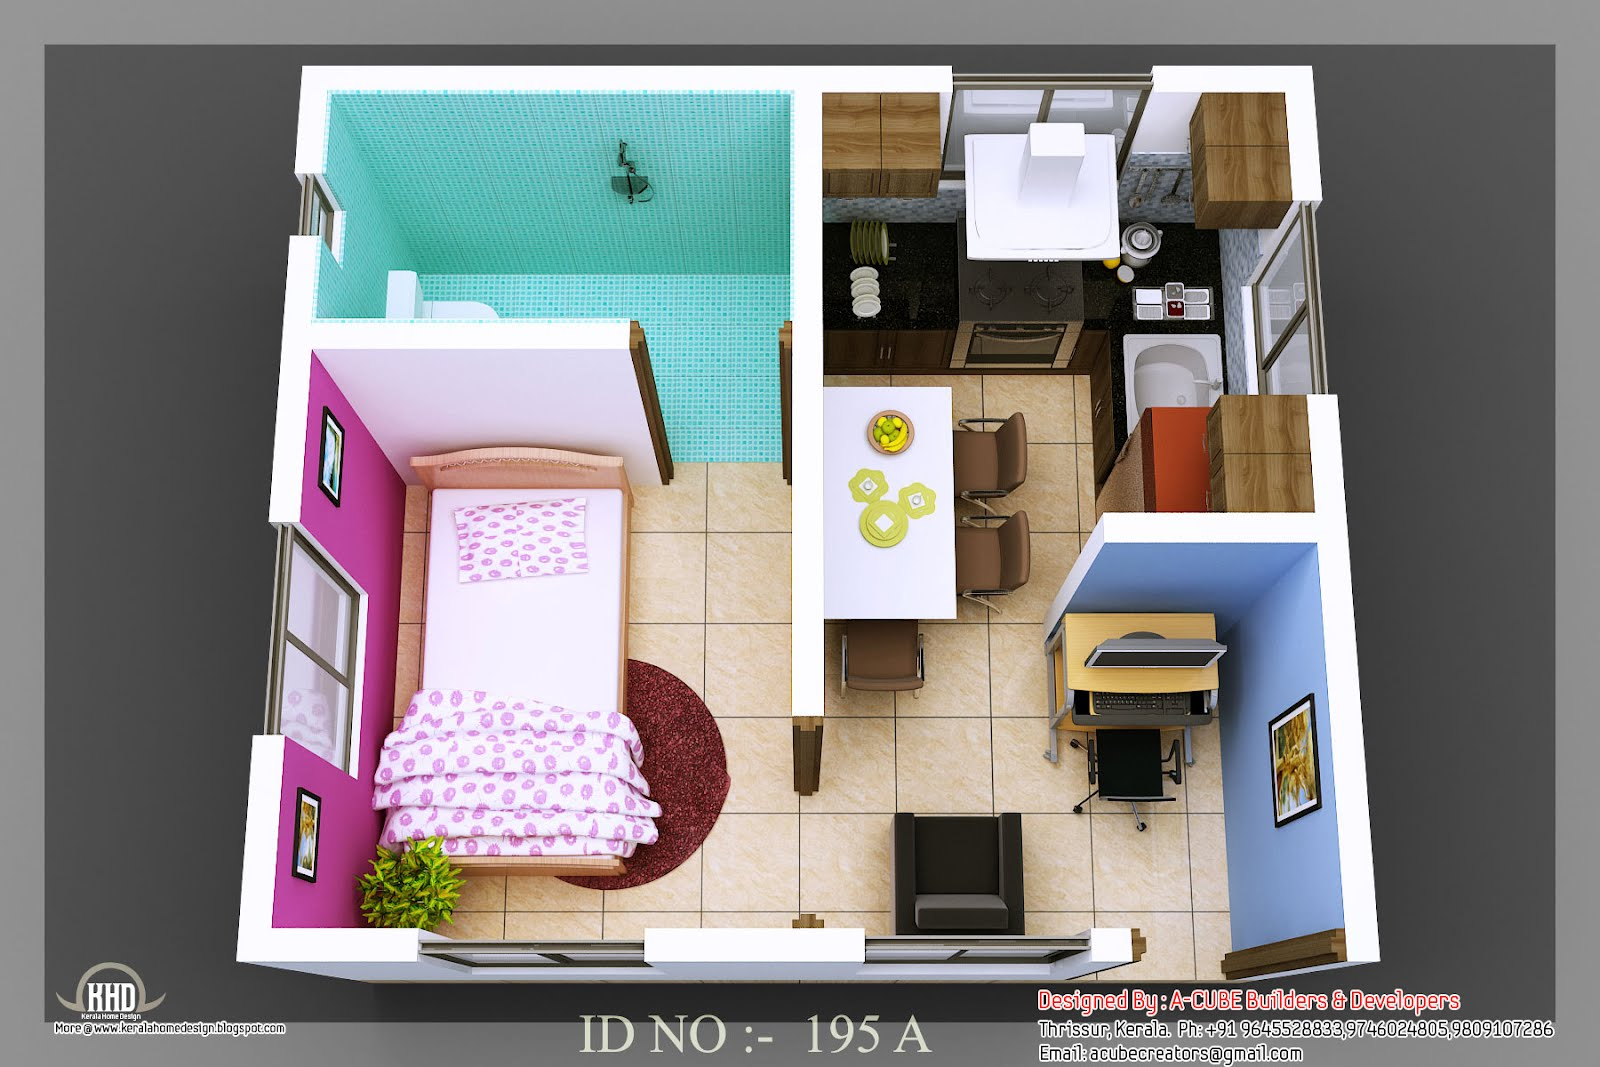 3d isometric views of small house plans kerala home for Home designs 3d images